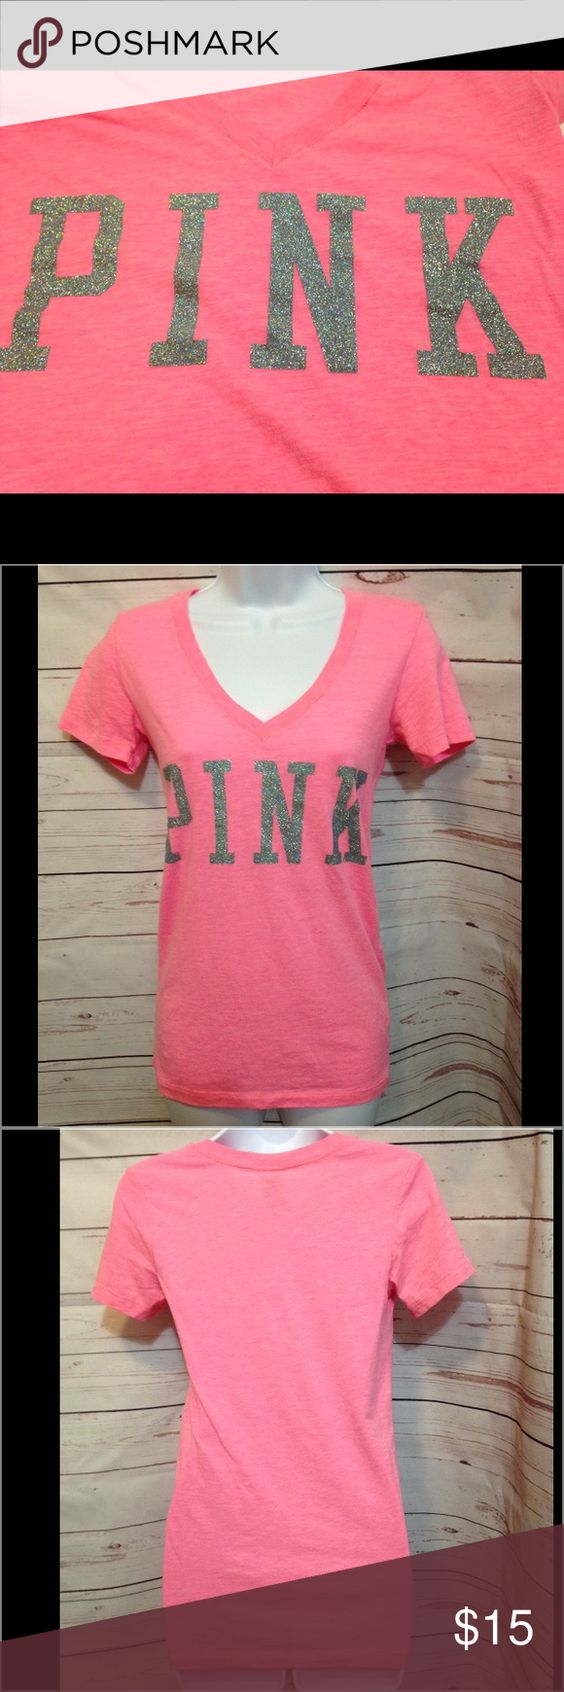 "PINK Victorias Secret pink tee PINK Victorias Secret pink tee. Adorable pink V-neck with silver glitter PINK on front.  25"" long, 15"" across chest. Excellent condition! PINK Victoria's Secret Tops Tees - Short Sleeve"